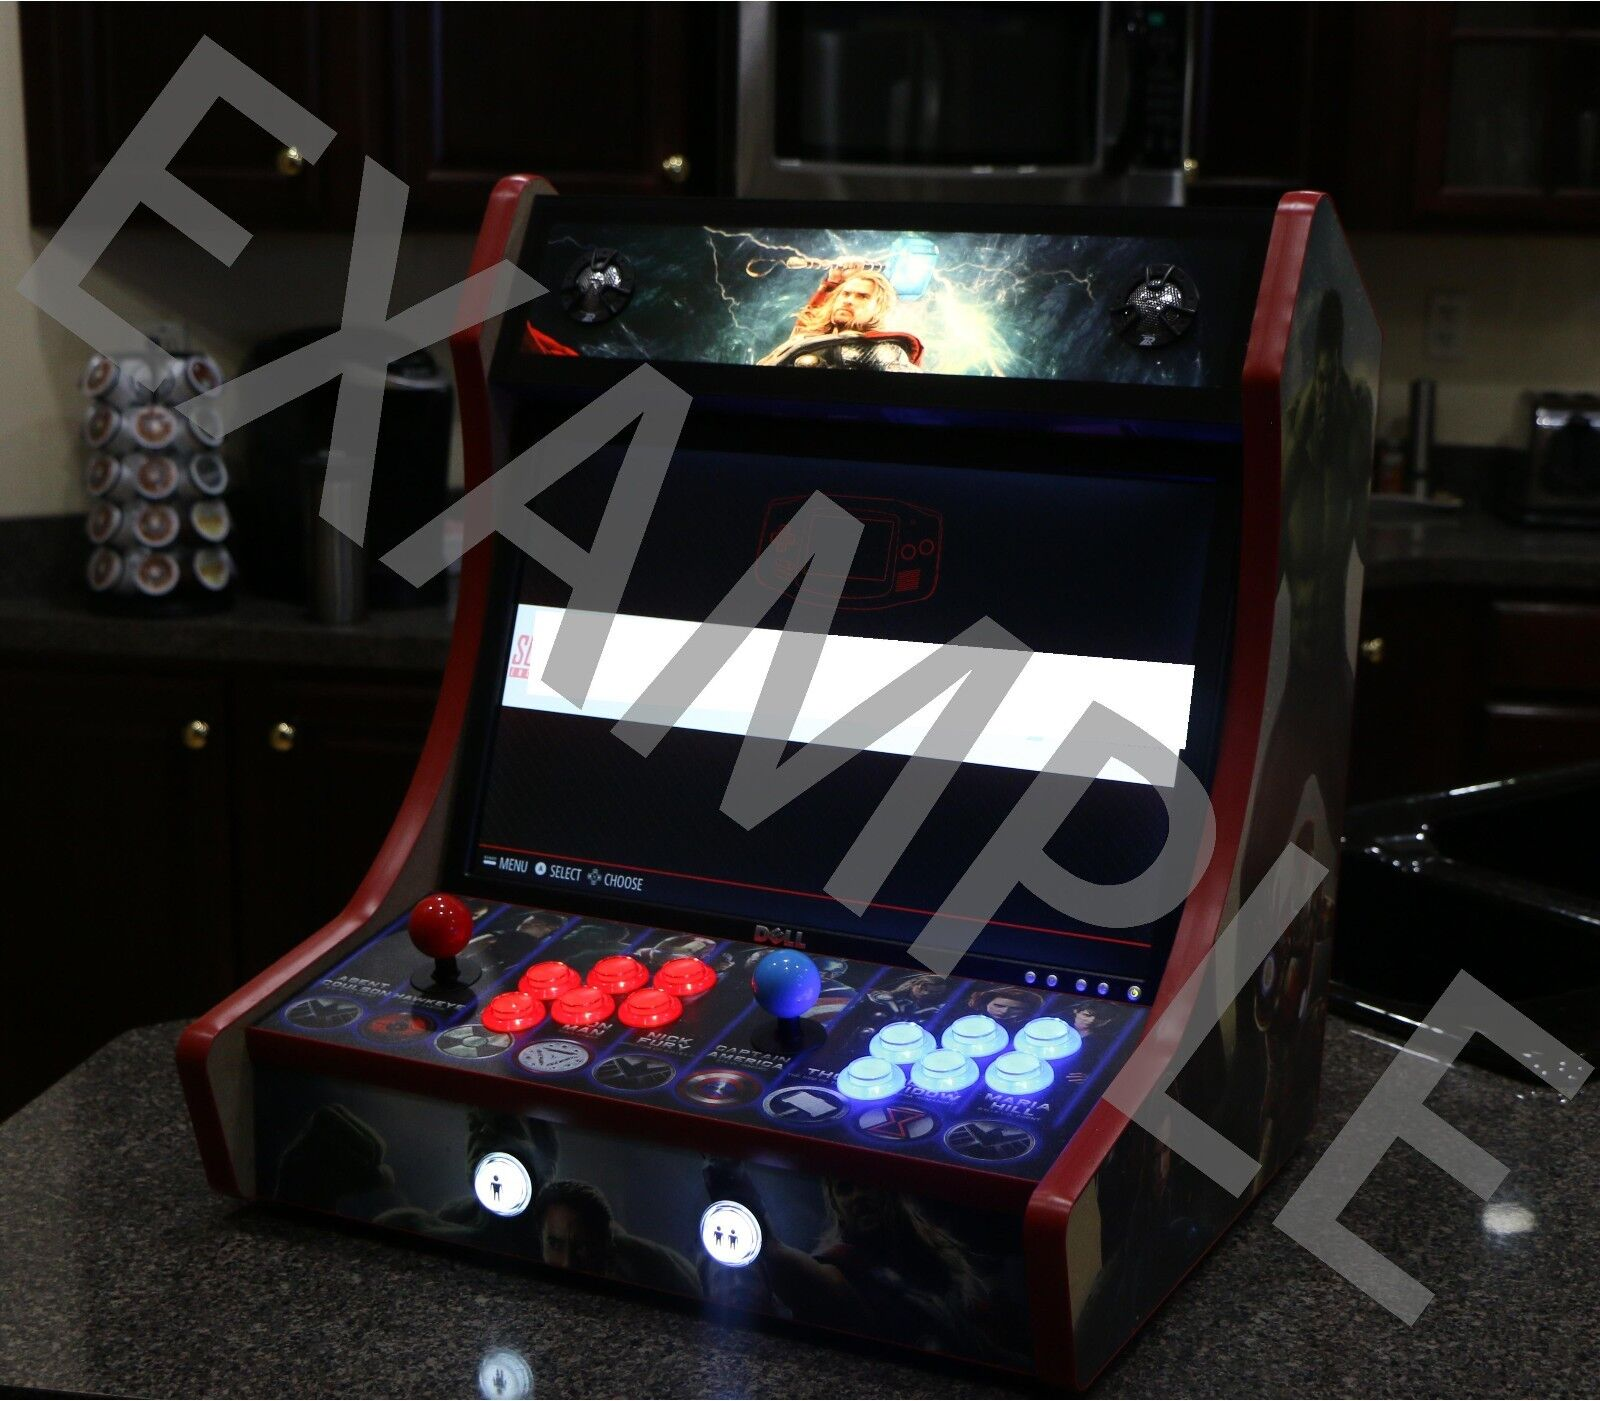 Bartop arcade cabinet mdf do it yourself kit with t molding cuts 1 of 6free shipping bartop arcade cabinet mdf do it yourself kit with t molding cuts solutioingenieria Gallery